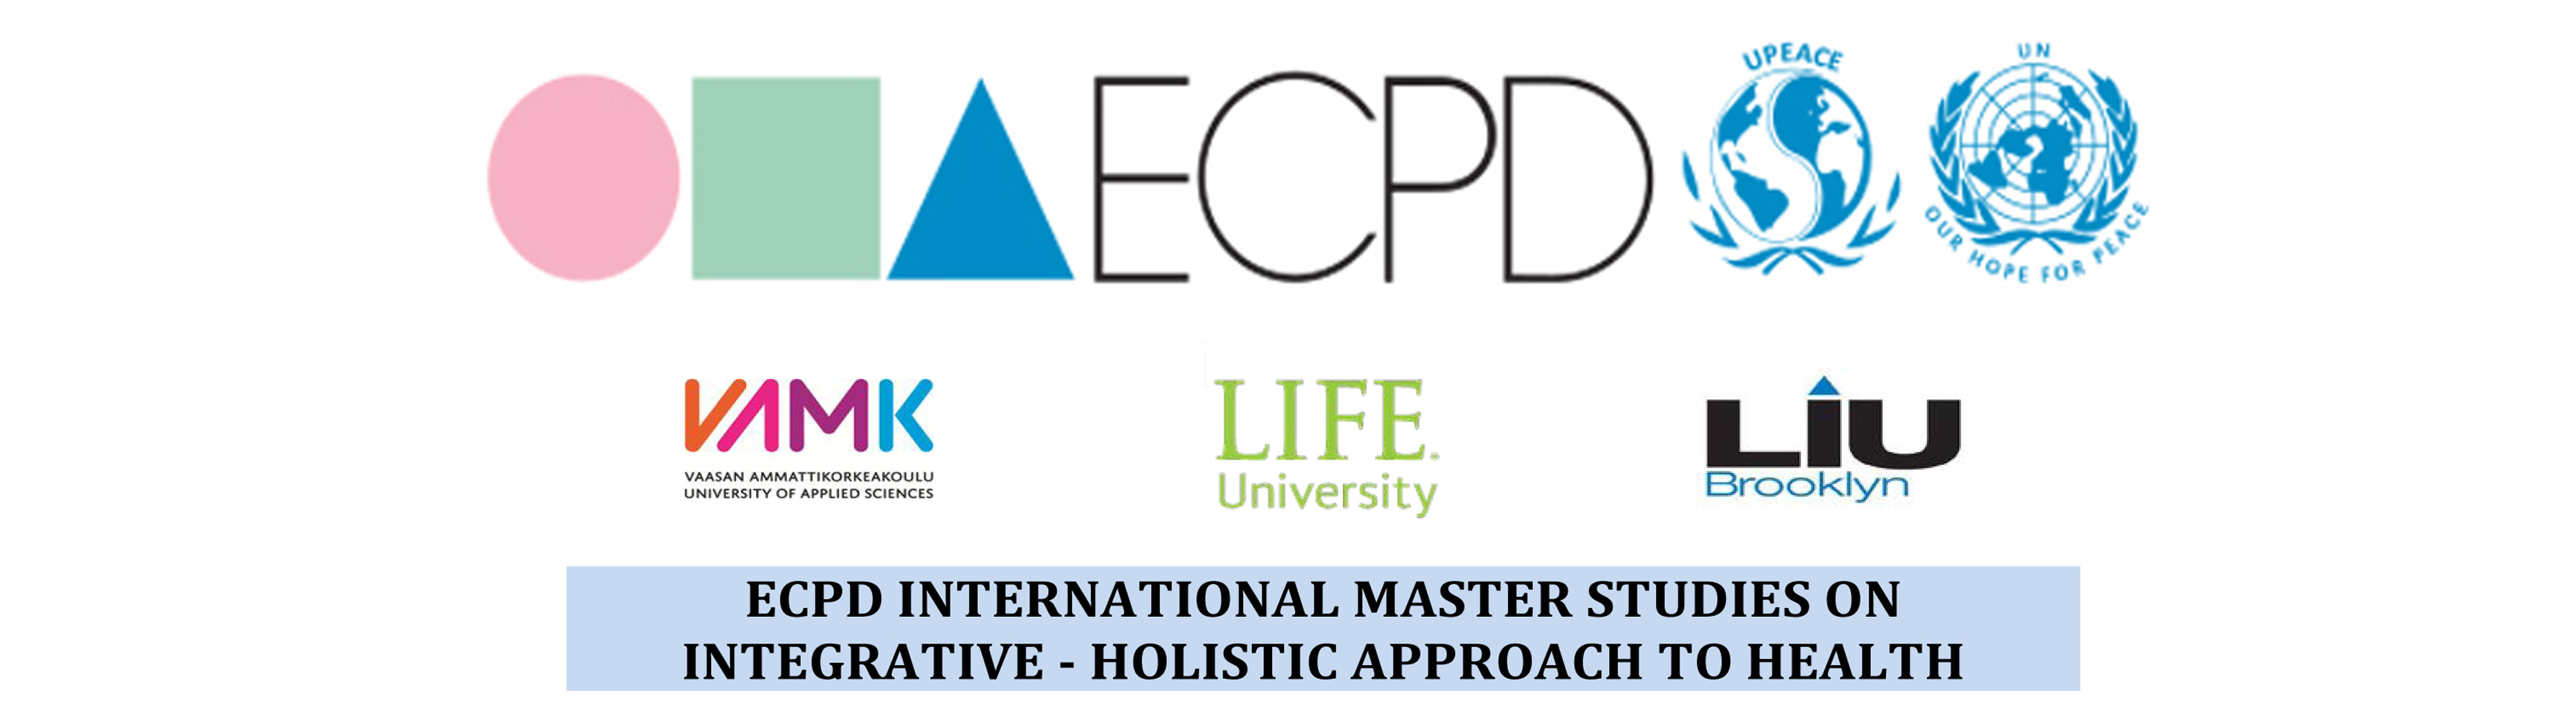 ECPD INTERNATIONAL MASTER STUDIES ON INTEGRATIVE - HOLISTIC APPROACH TO HEALTH